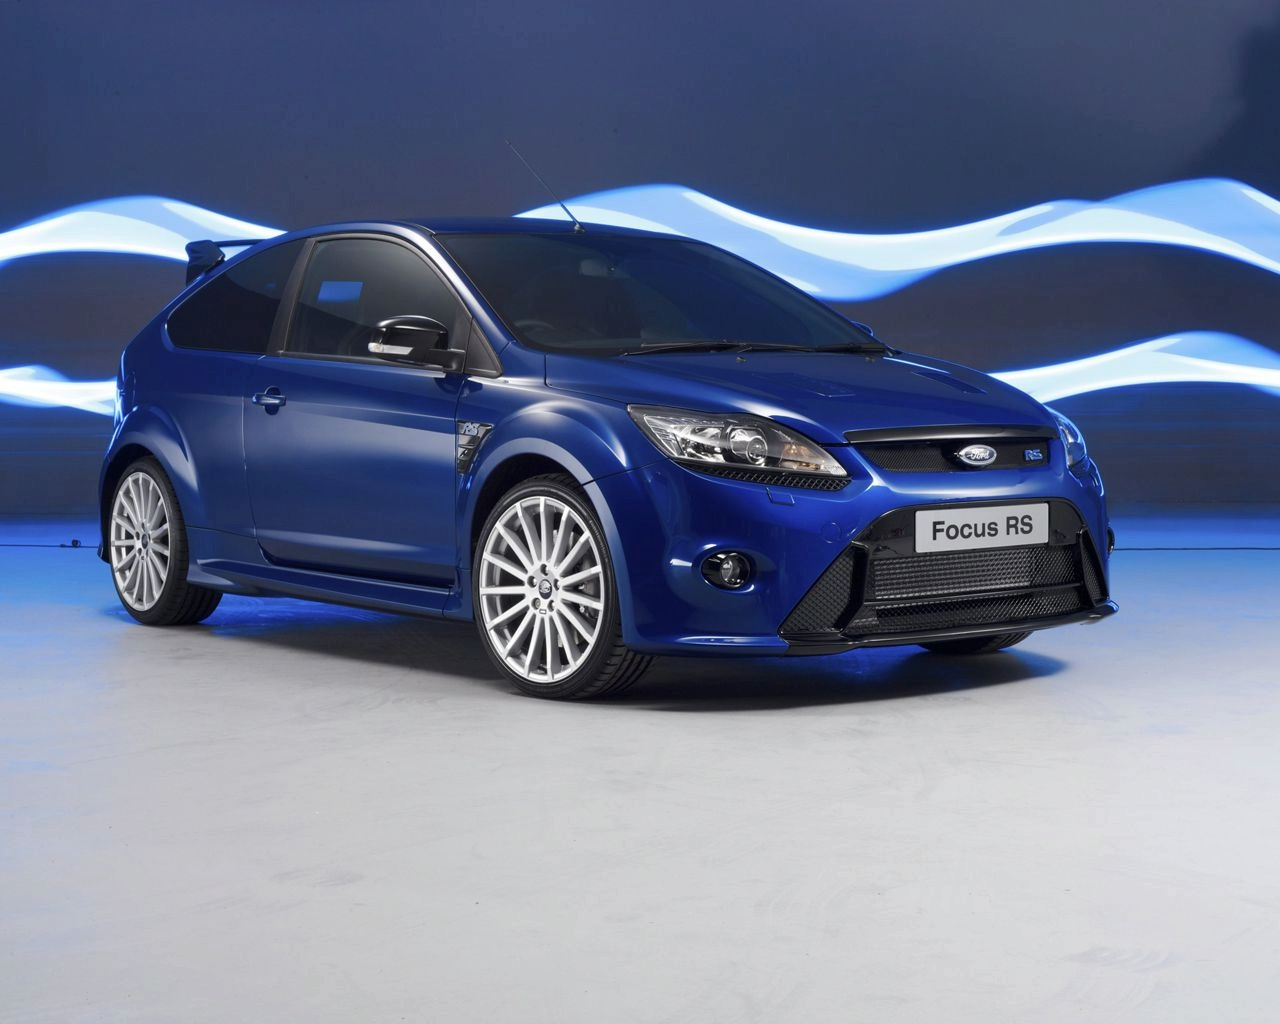 Ford Focus RS Car Wallpapers Bikes Cars Wallpapers 1280x1024